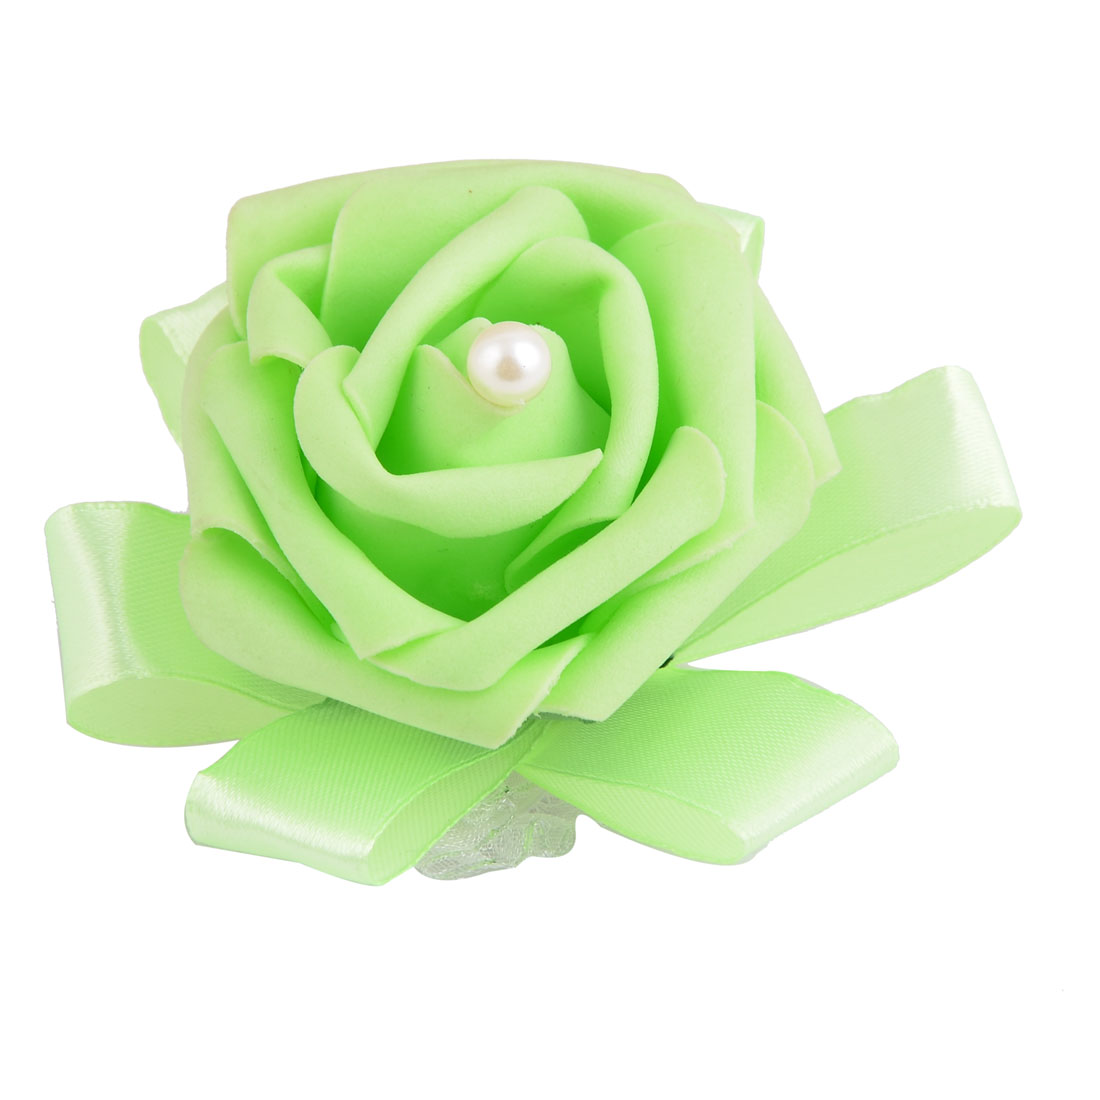 Wedding Foam Rose Design Bridesmaid Hand Decorative Artificial Wrist Flower Light Green